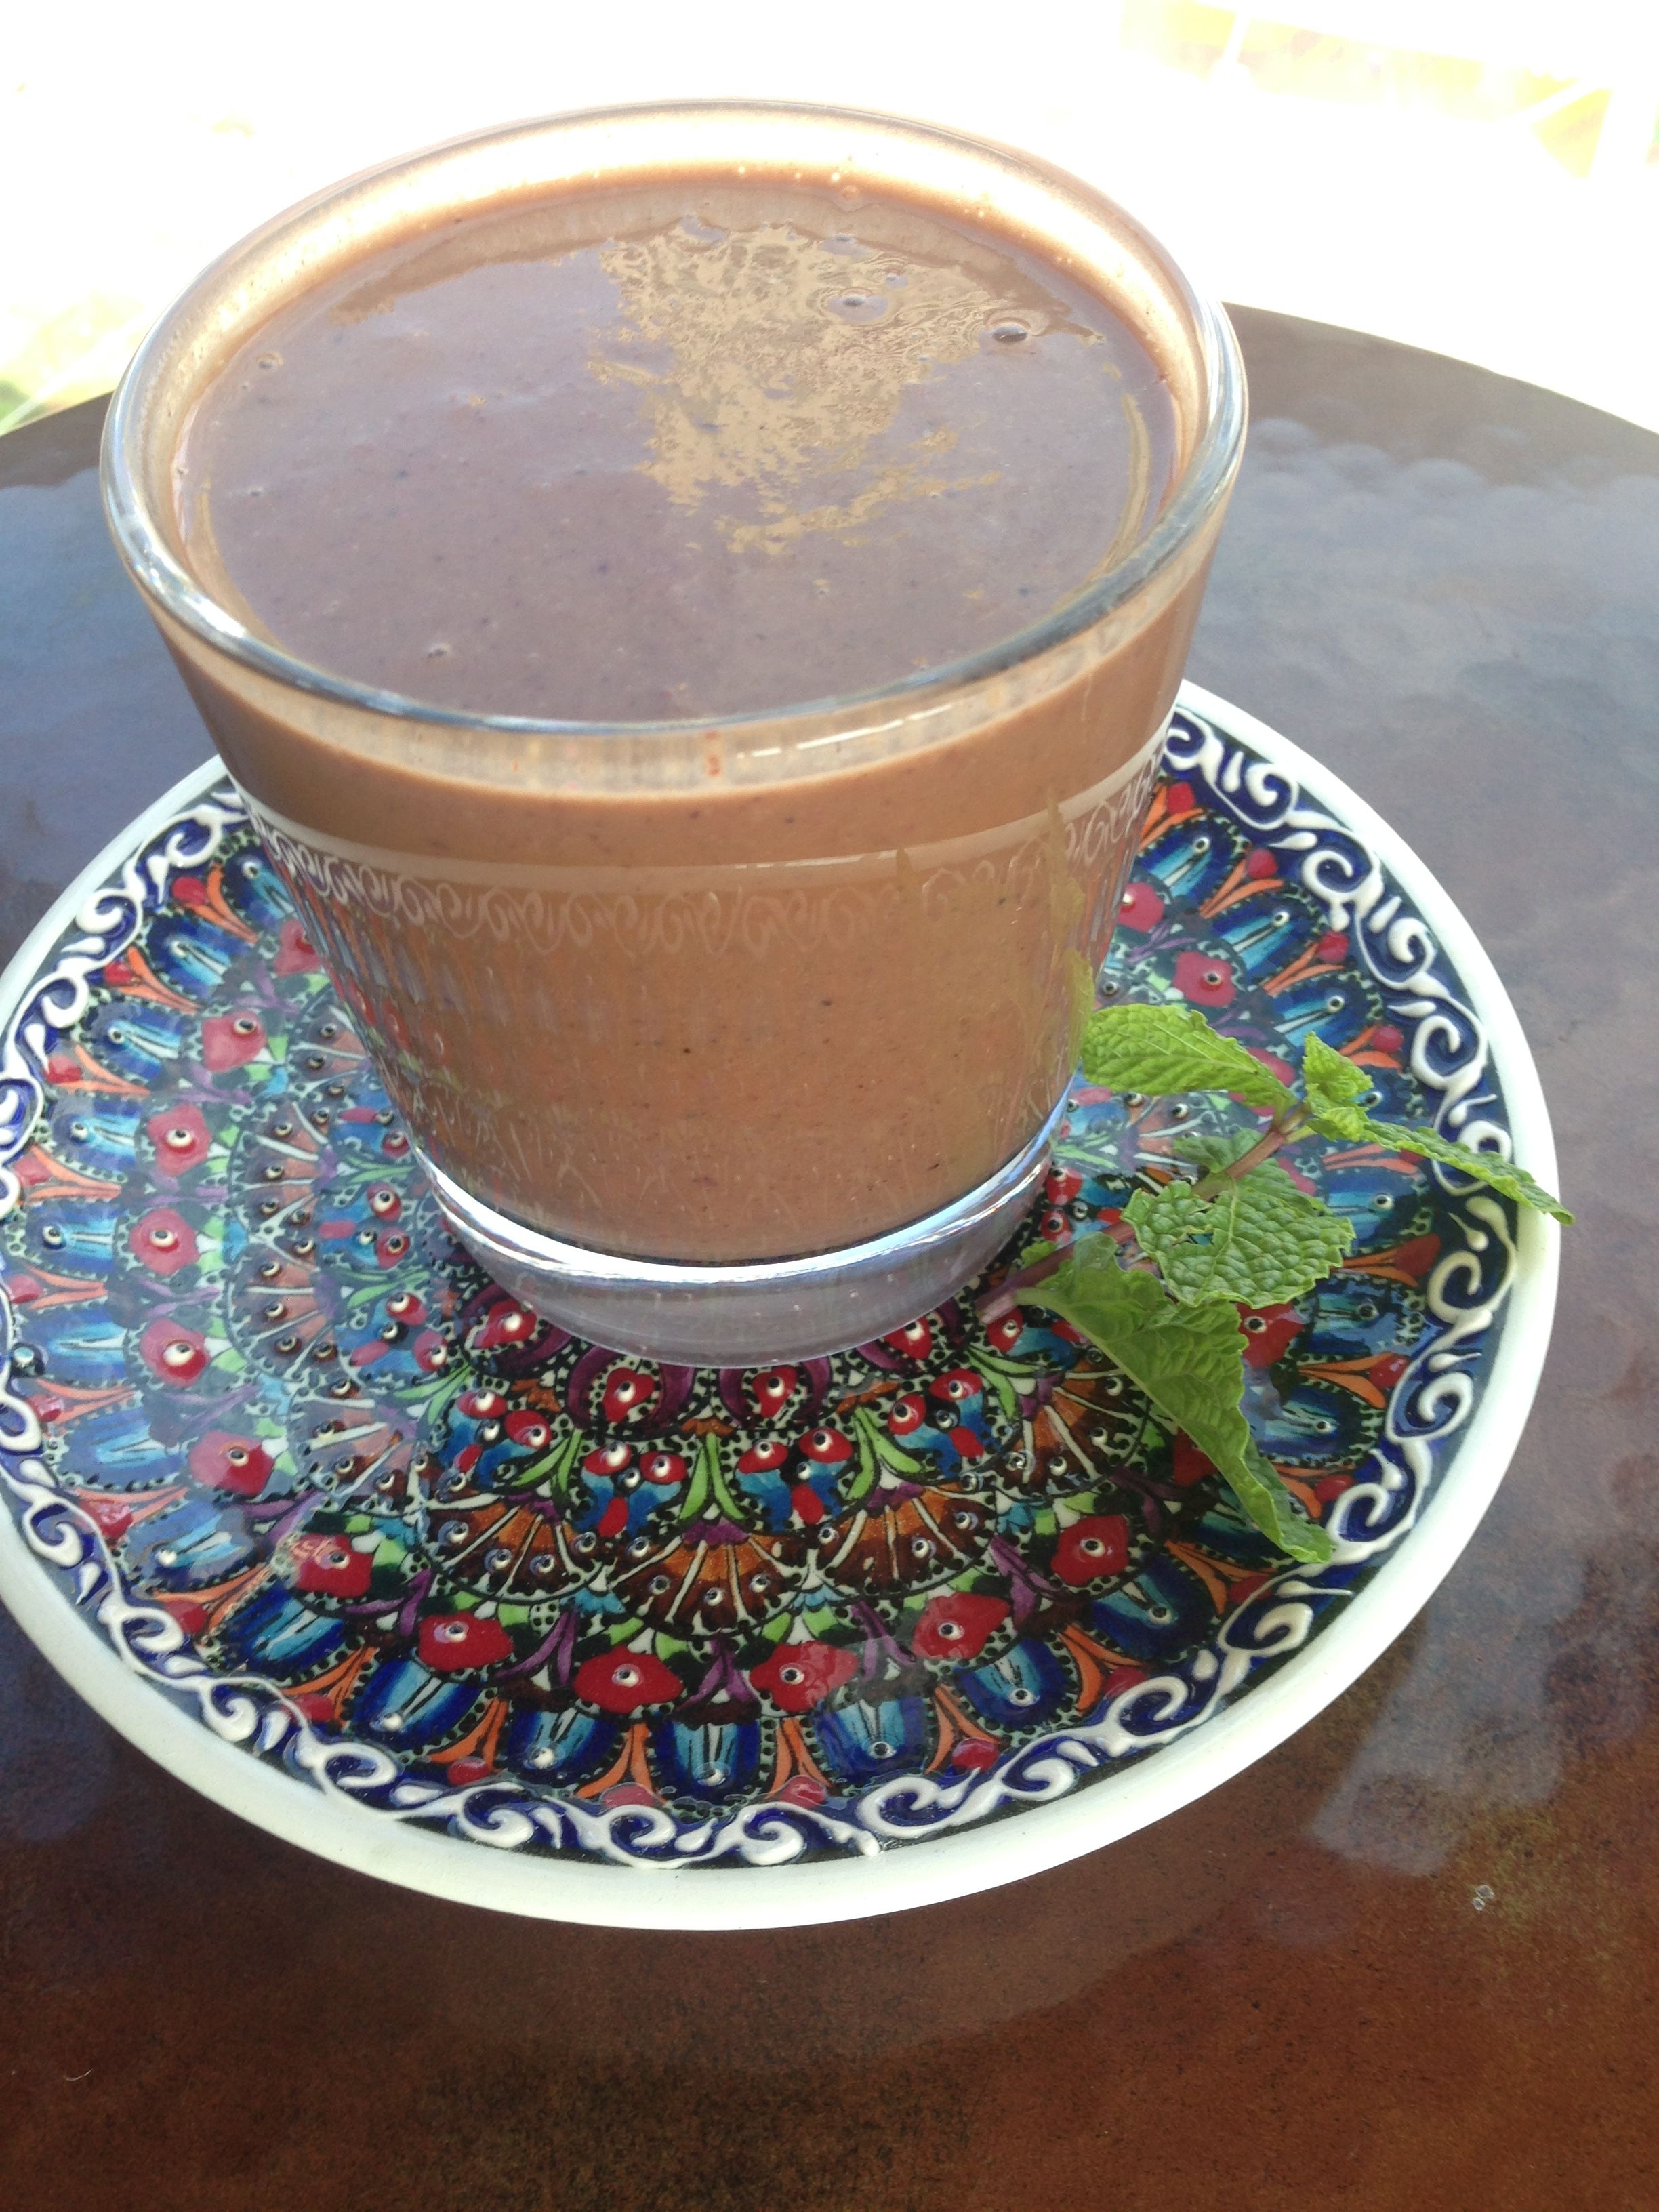 Chocolate cravings: raw cacao, hemp, raw local honey, organic unheated almond milk, berries, banana, wheatgrass and flax seeds.   Combining banana with flax seeds helps with absorption as does coming berries with raw cacao.